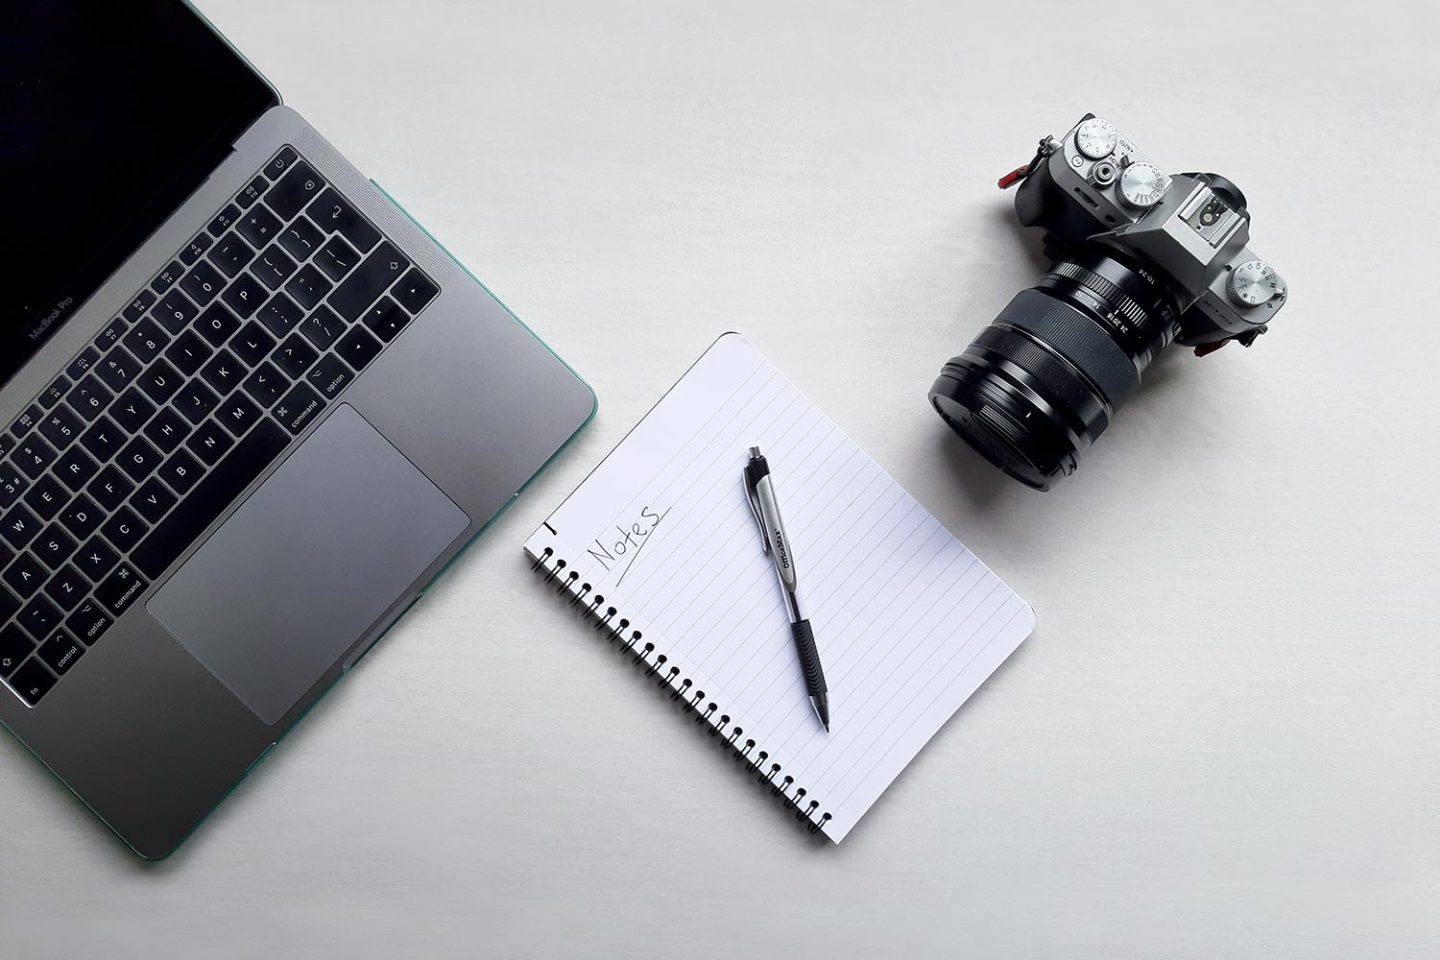 A camera, notepad and laptop arranged on top of a white desk